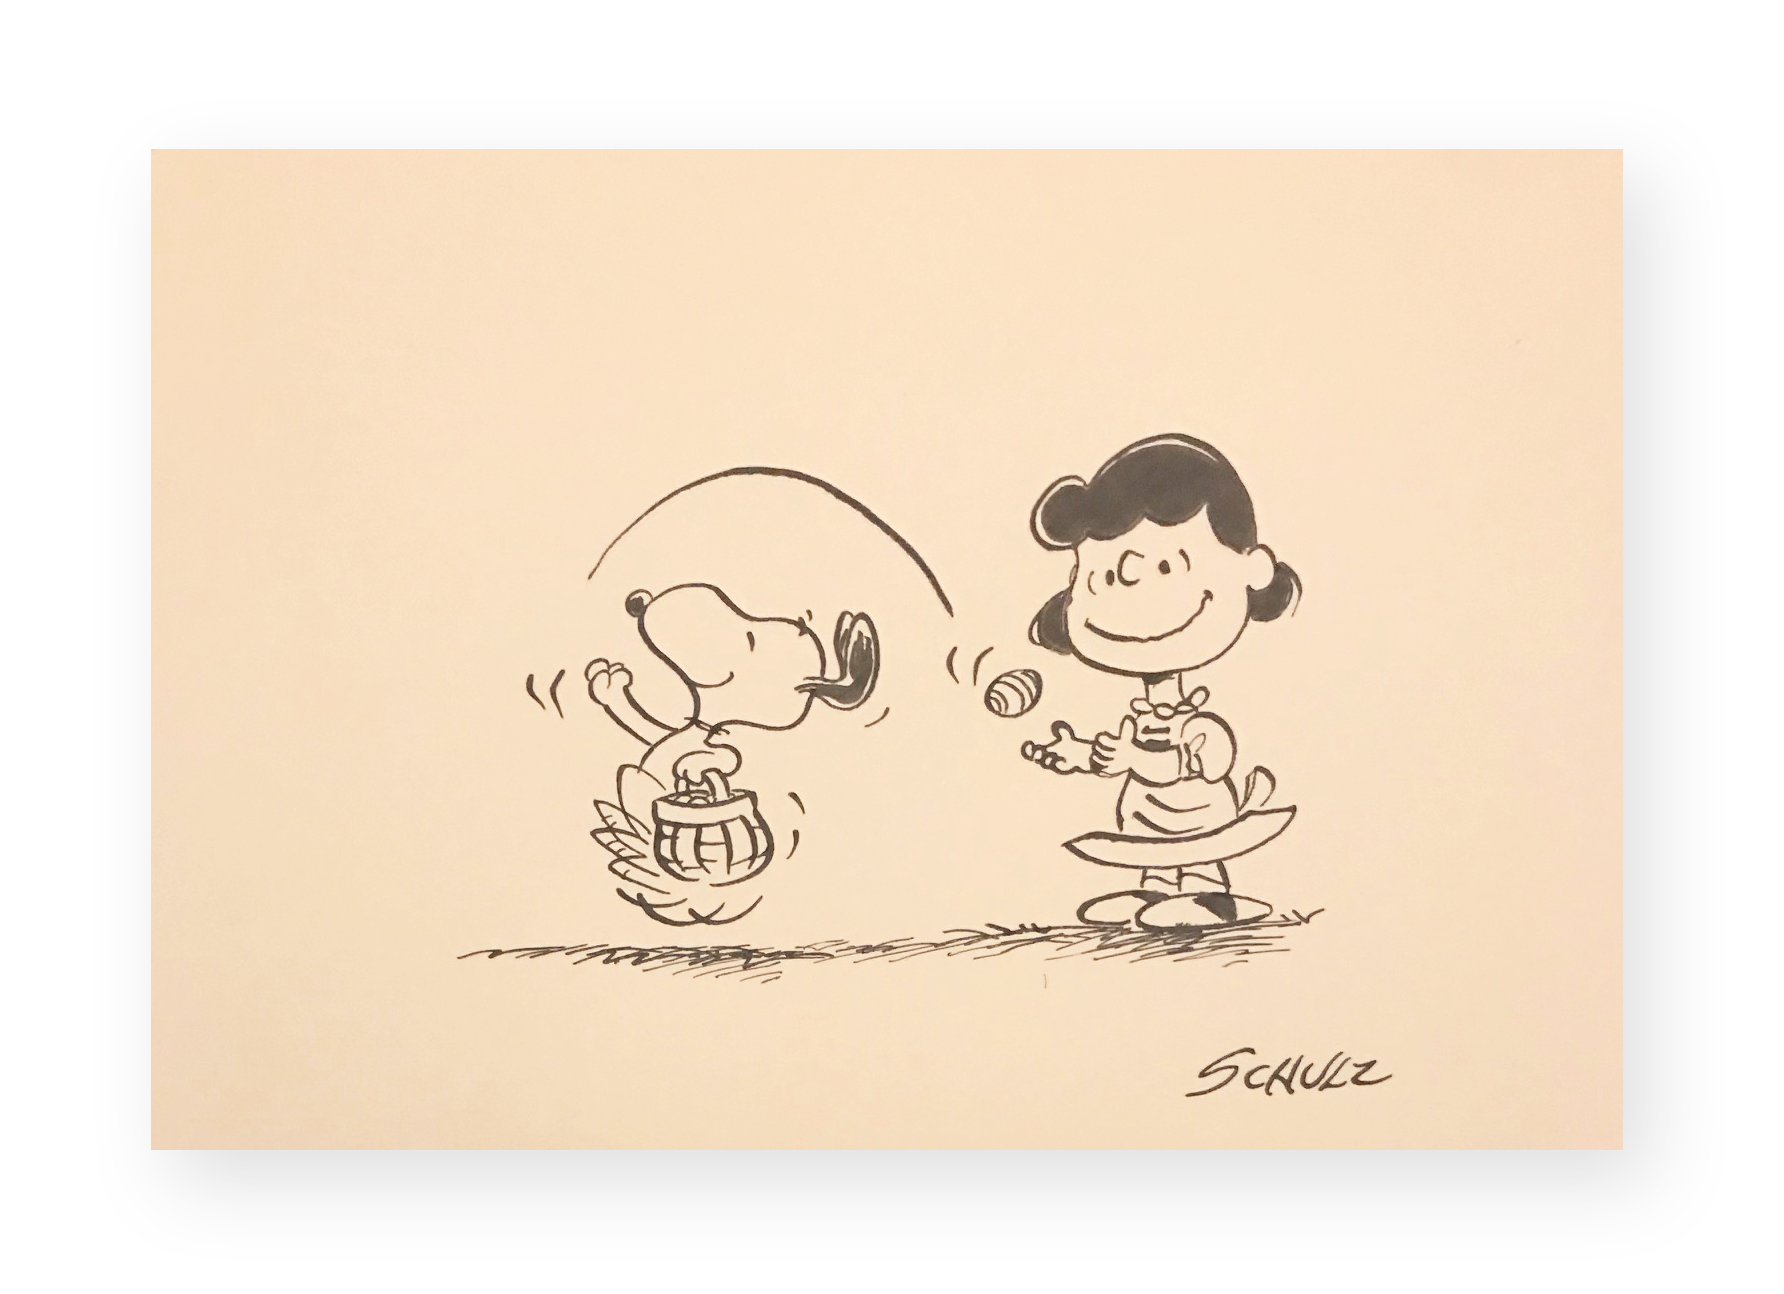 "Charles Schulz  ""Holiday Egg Toss""  Lucy and Snoopy  Ink on thick stock paper  7 x 10.5 inches  Circa 1970's  *Ted Long Collection"